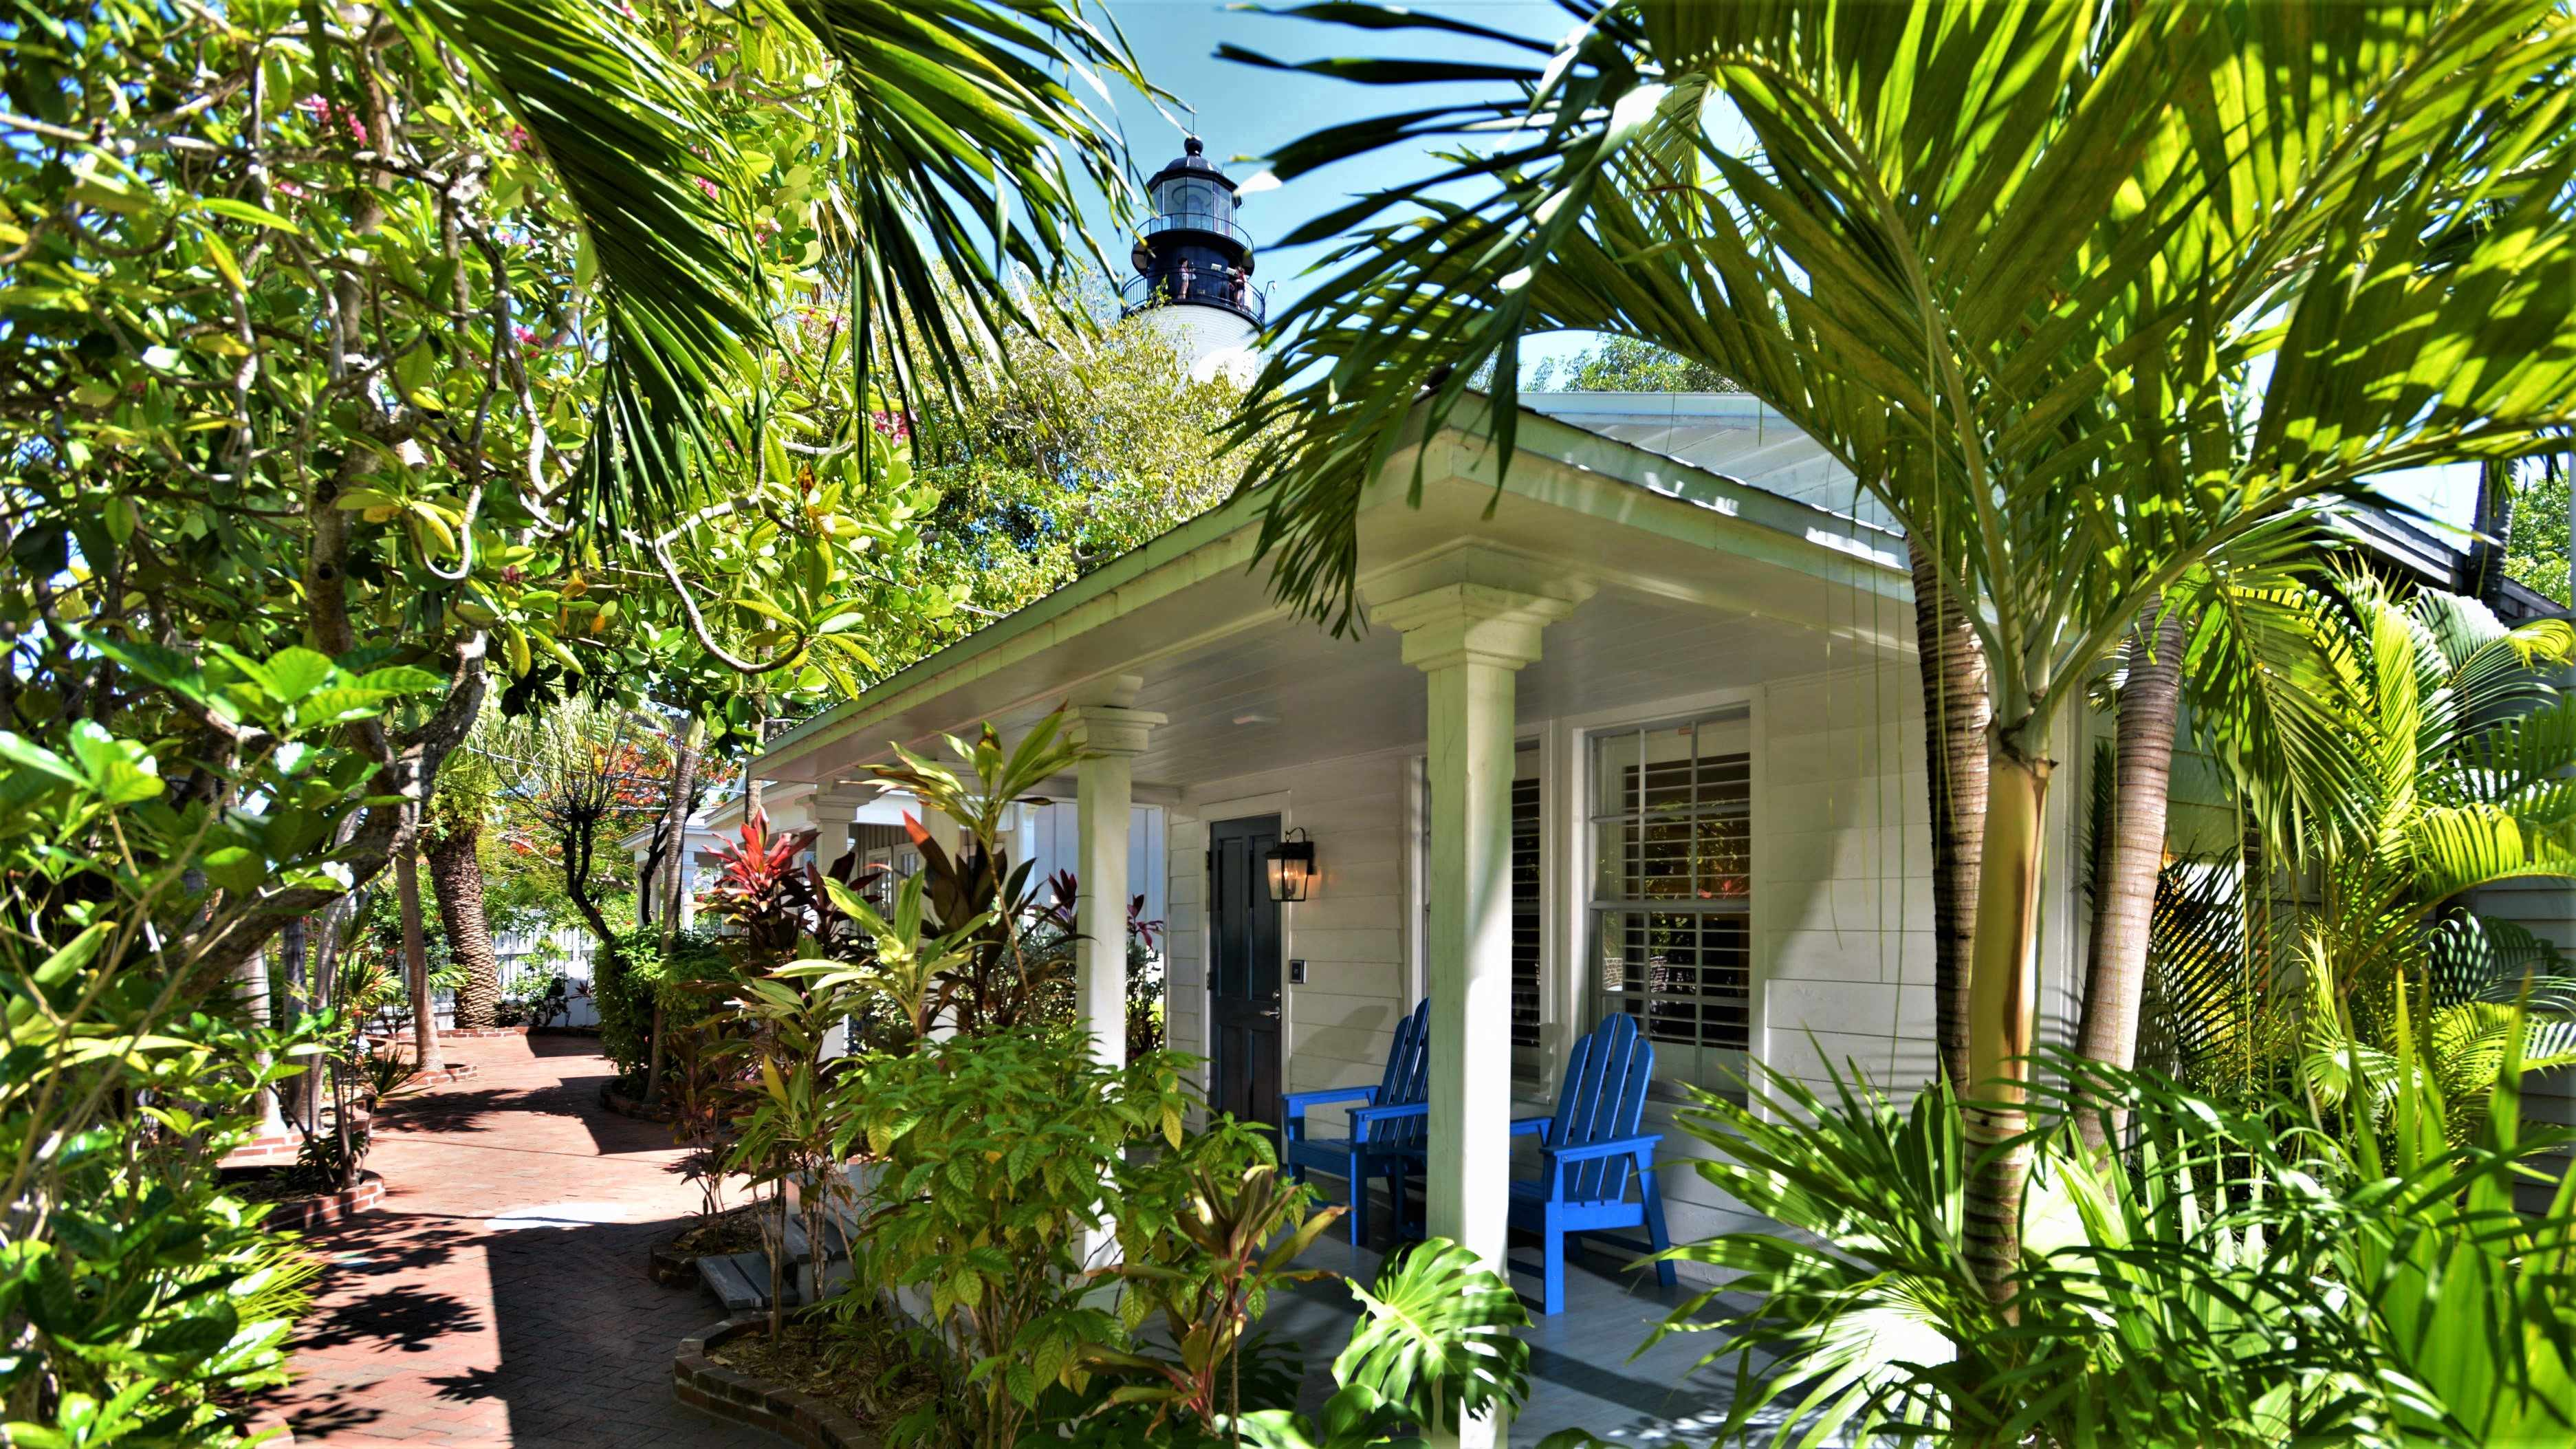 Historic Key West Inns - Key West - Lighthouse Court Hotel - Cottages